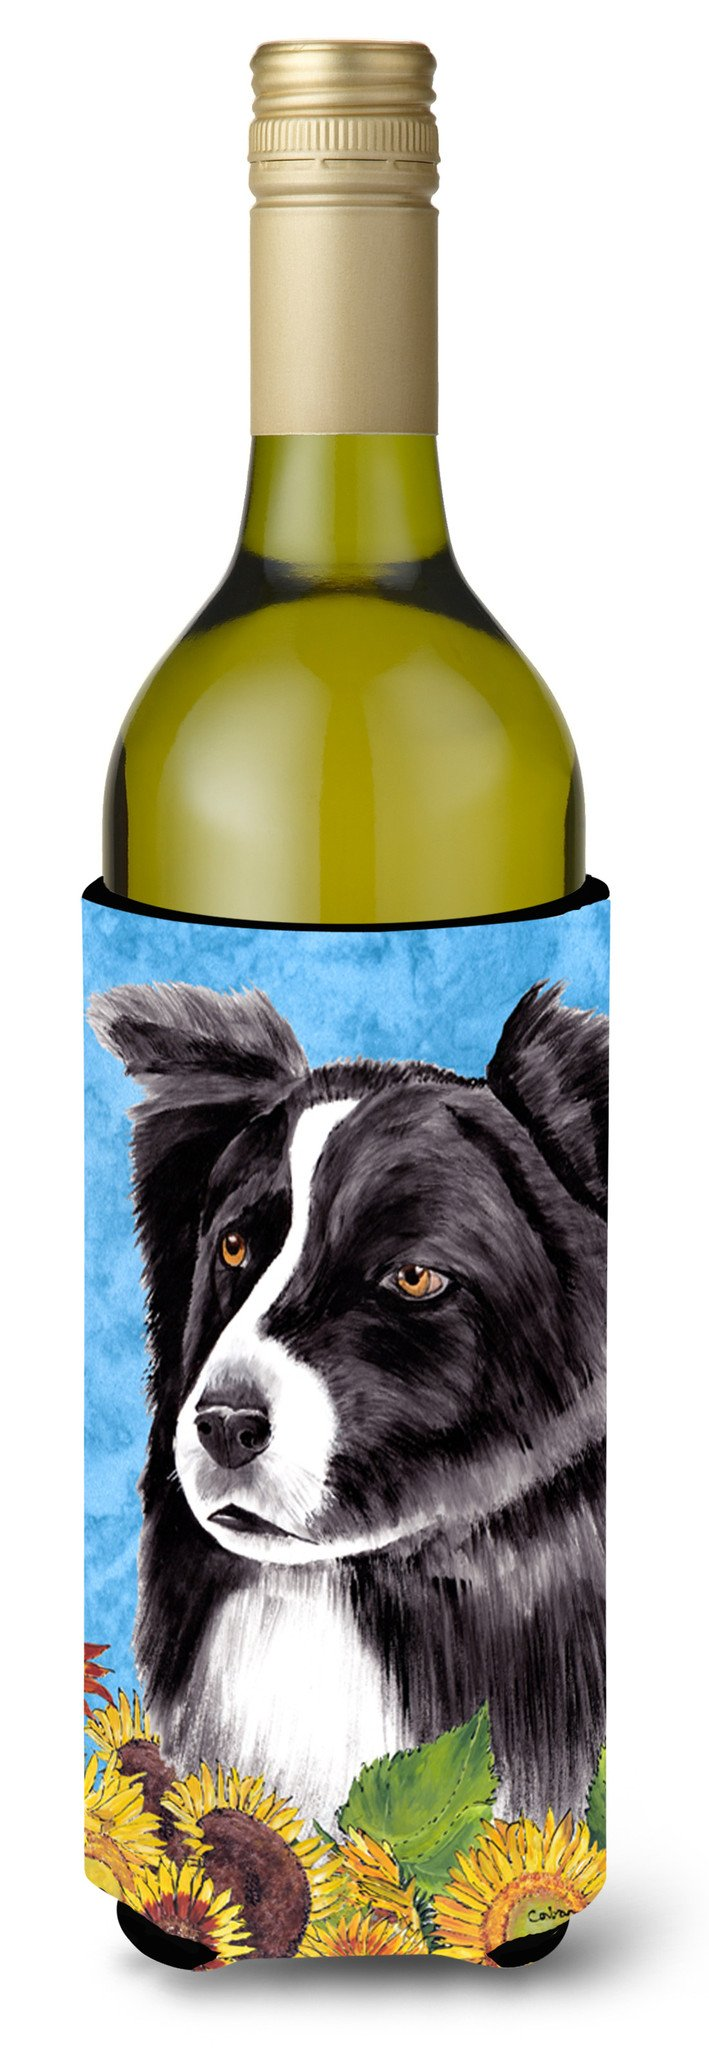 Border Collie Wine Bottle Beverage Insulator Beverage Insulator Hugger by Caroline's Treasures